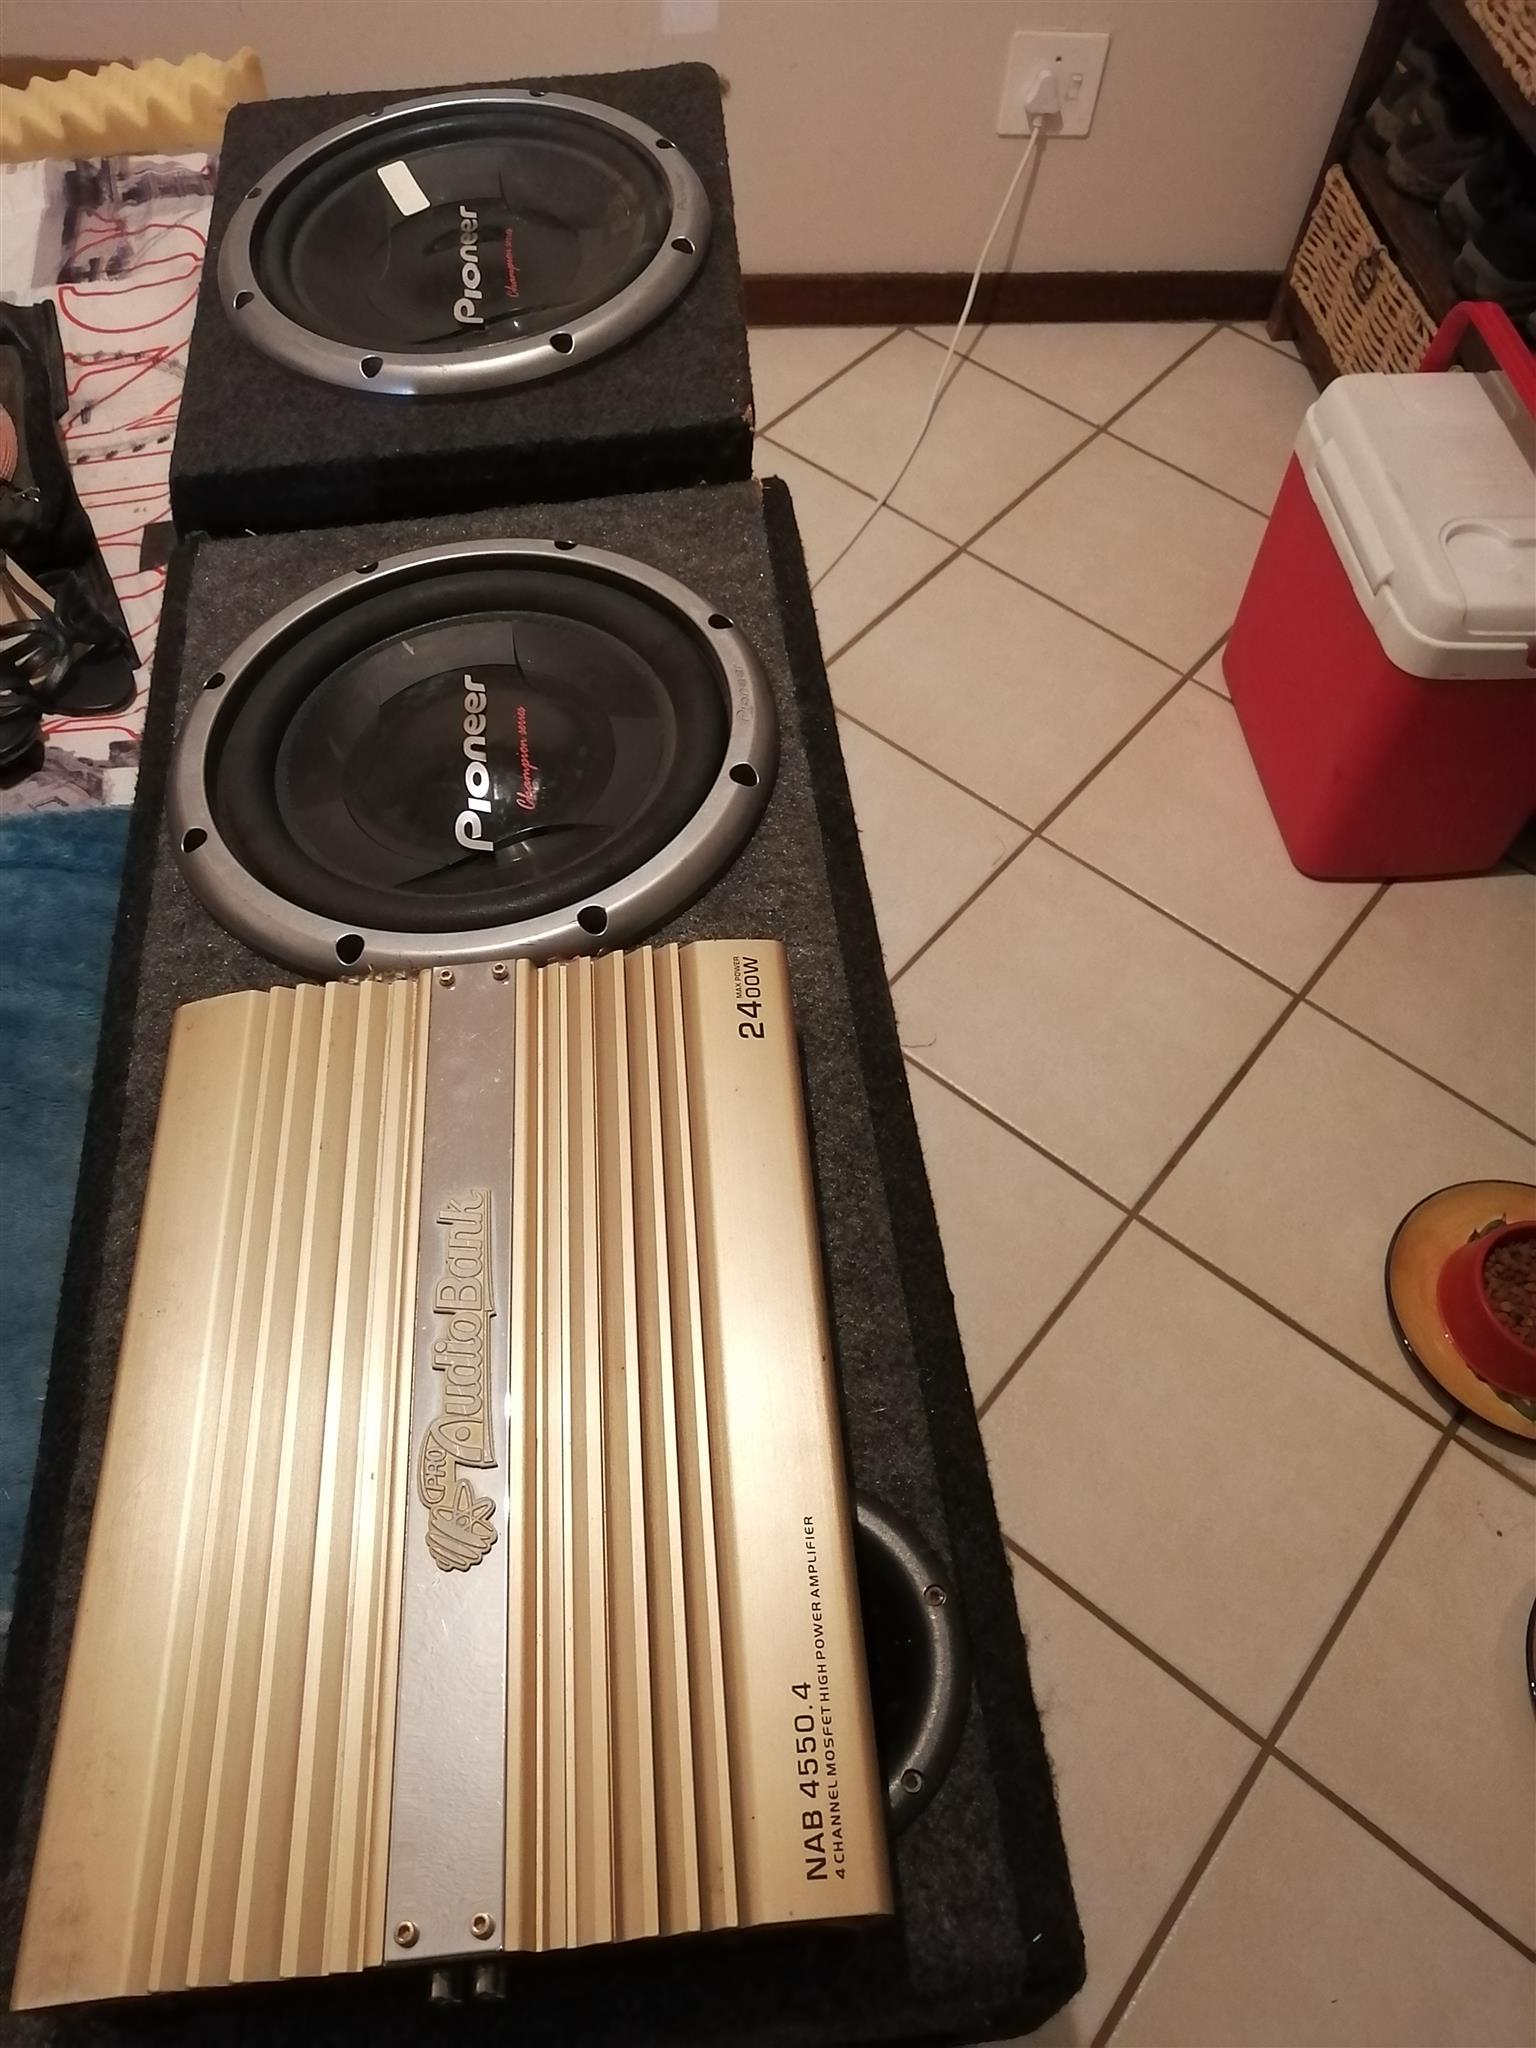 Aodiobank Amp and Subs speakers